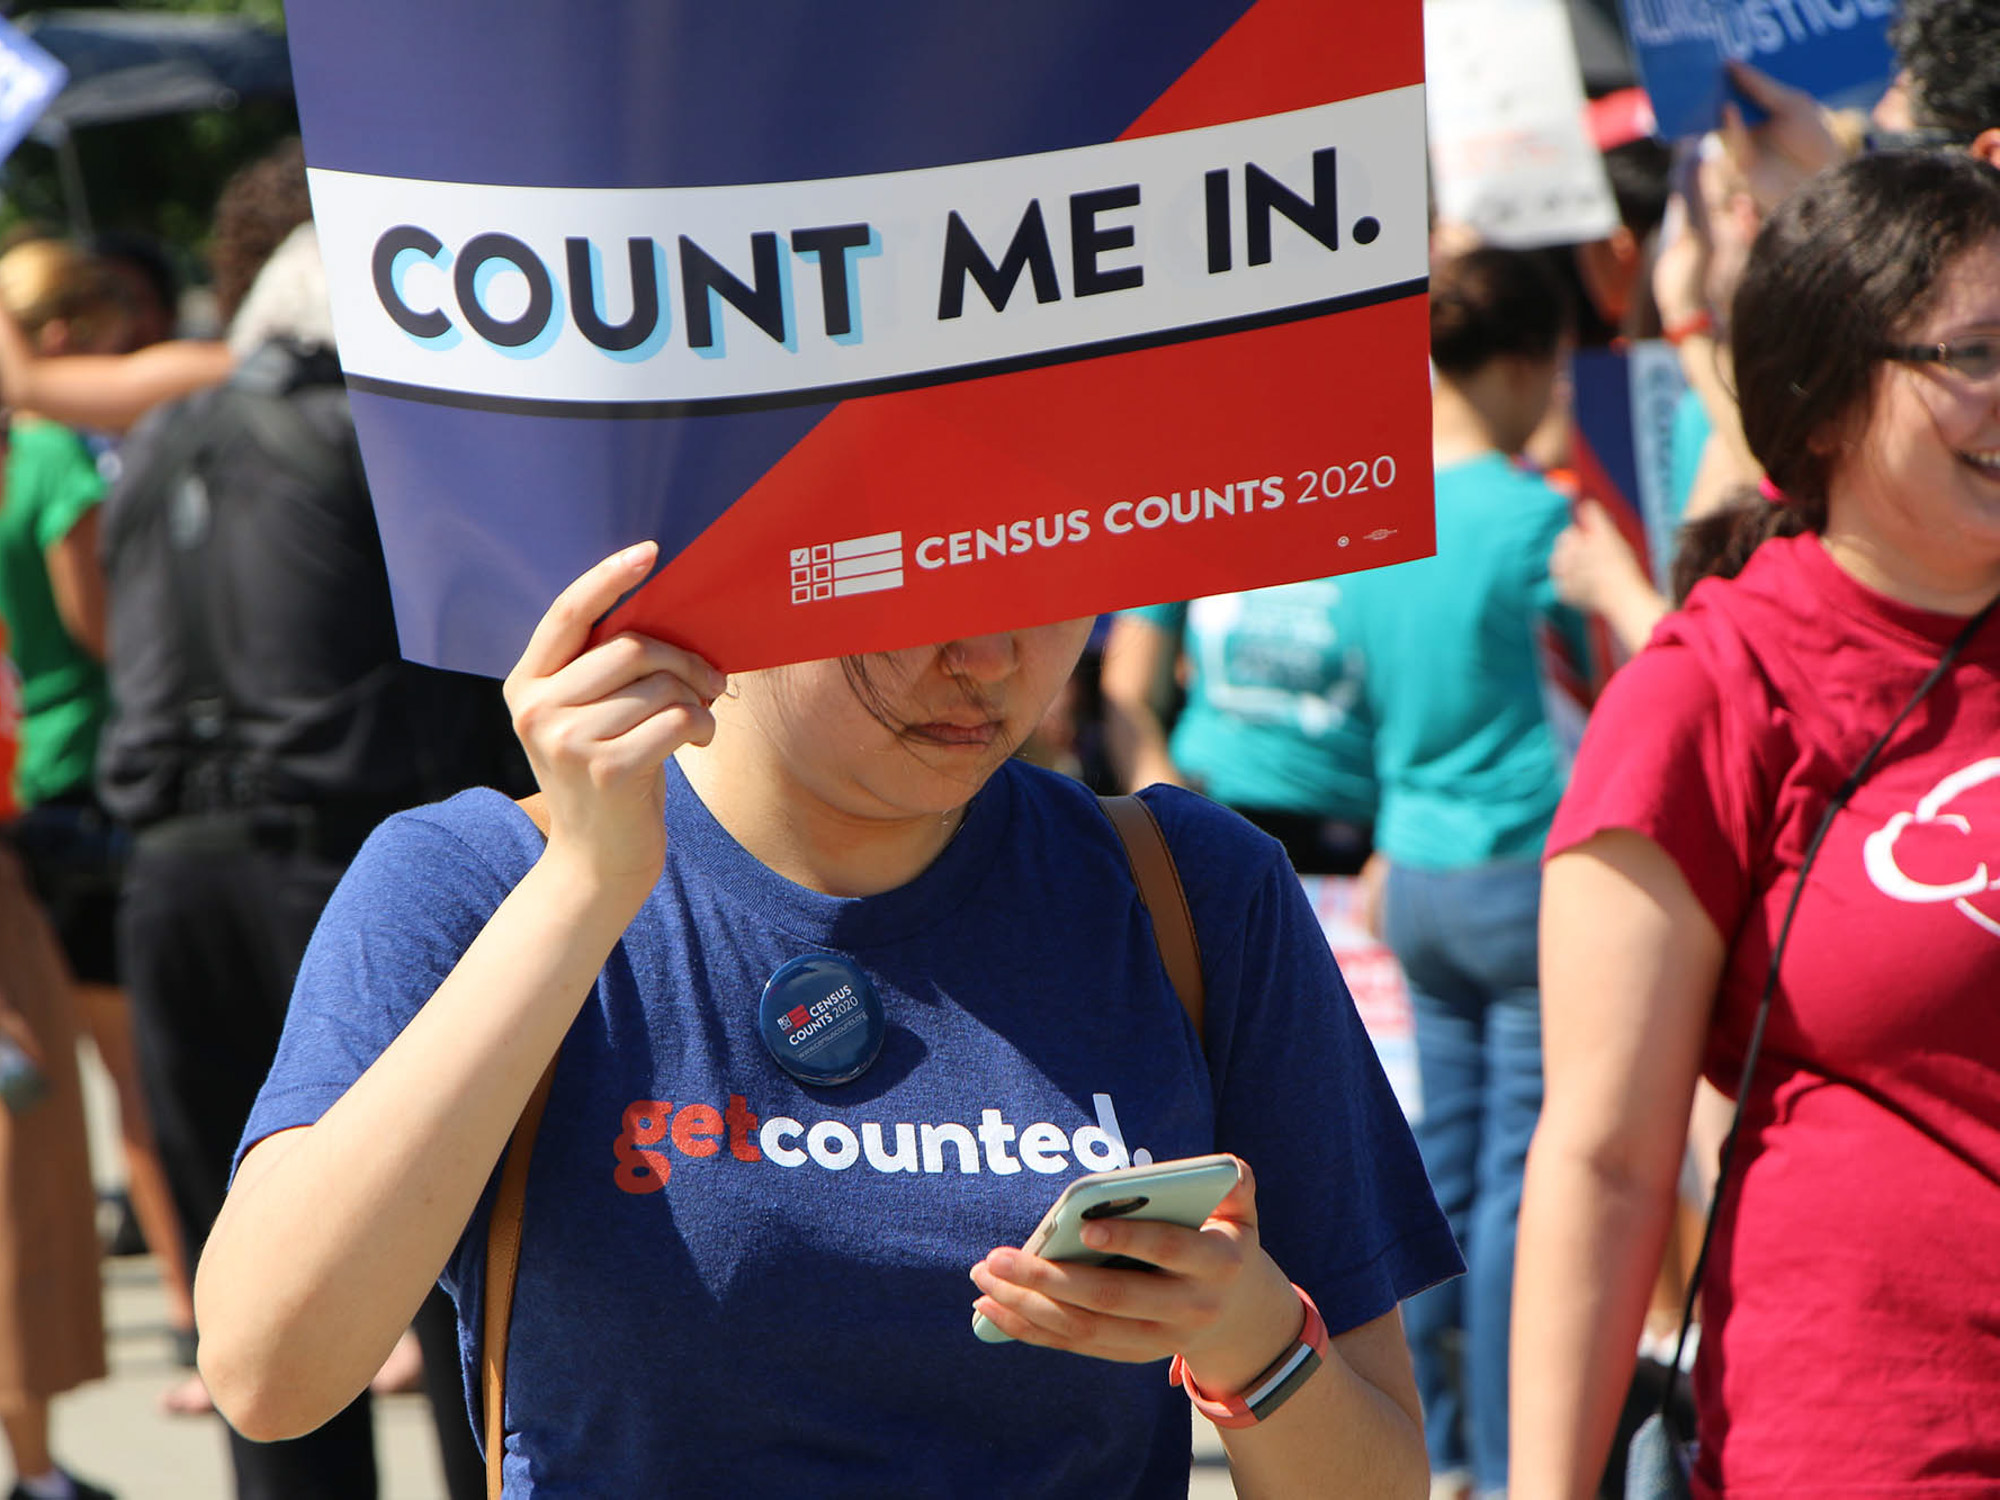 Census studied citizenship question even after losing in Supreme Court